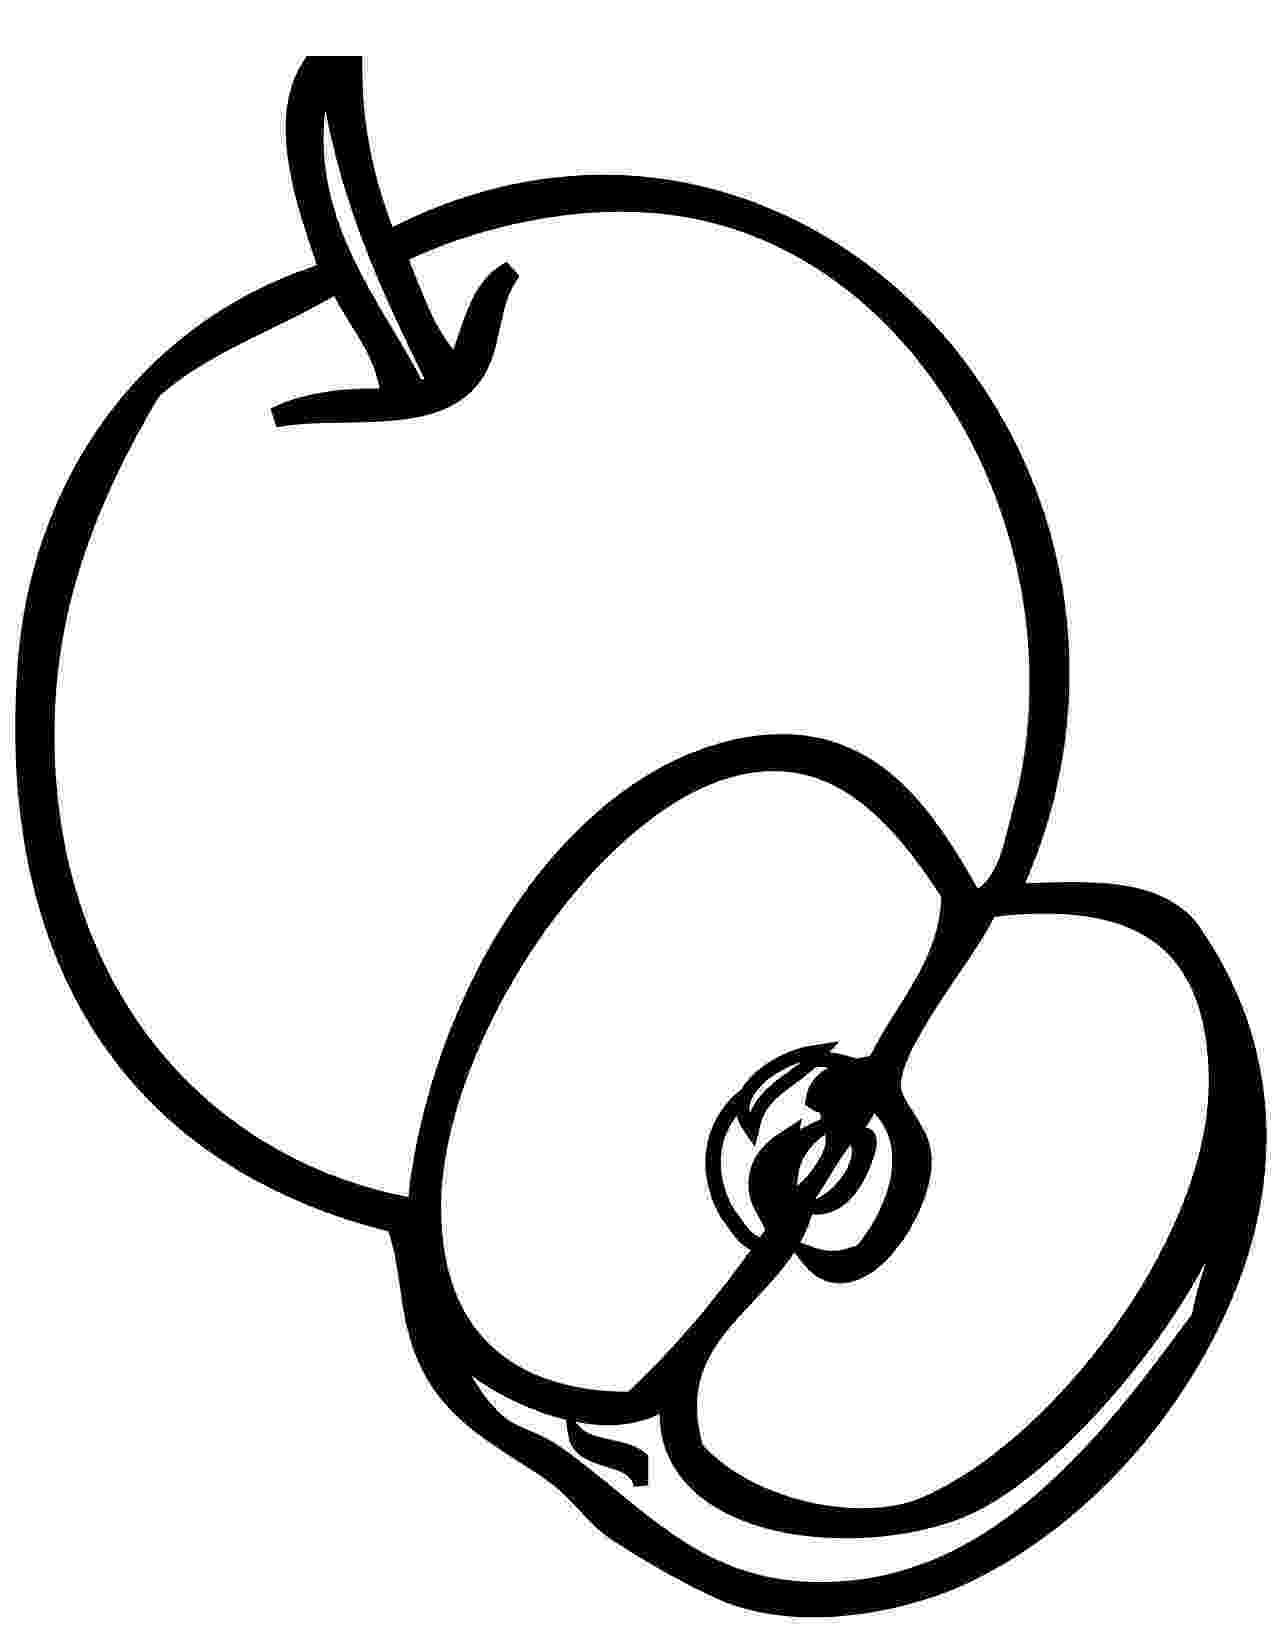 picture of apples how to draw an apple drawingforallnet of apples picture